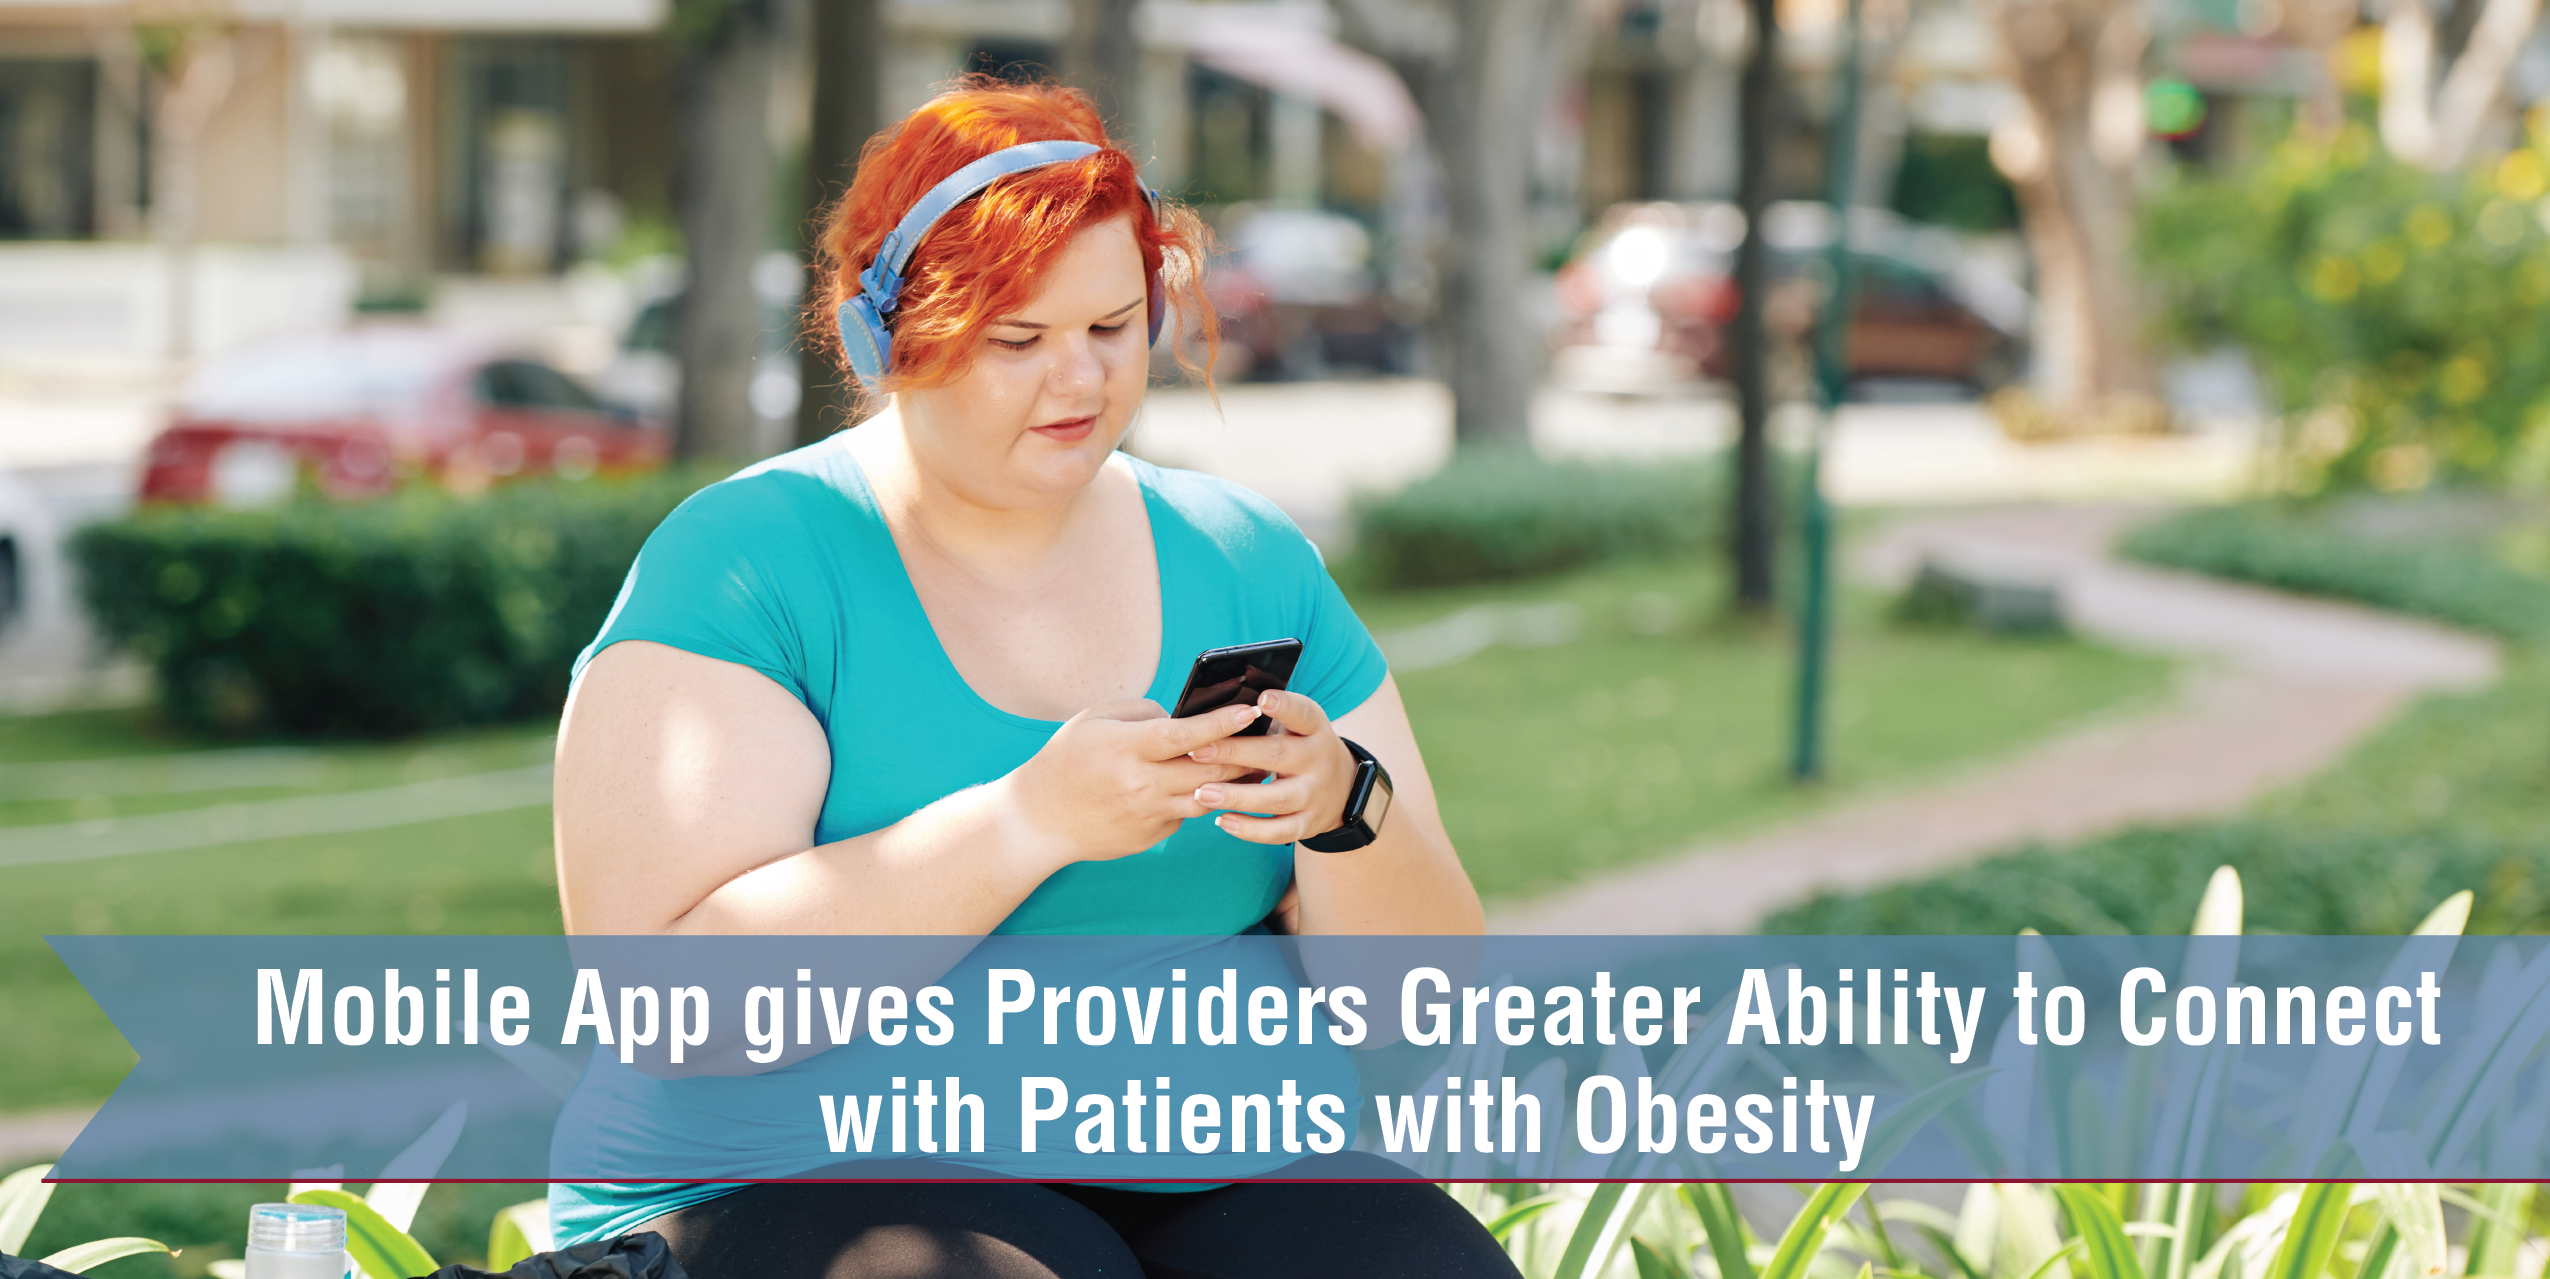 Mobile App Gives Providers Greater Ability To Connect With Patients With Obesity